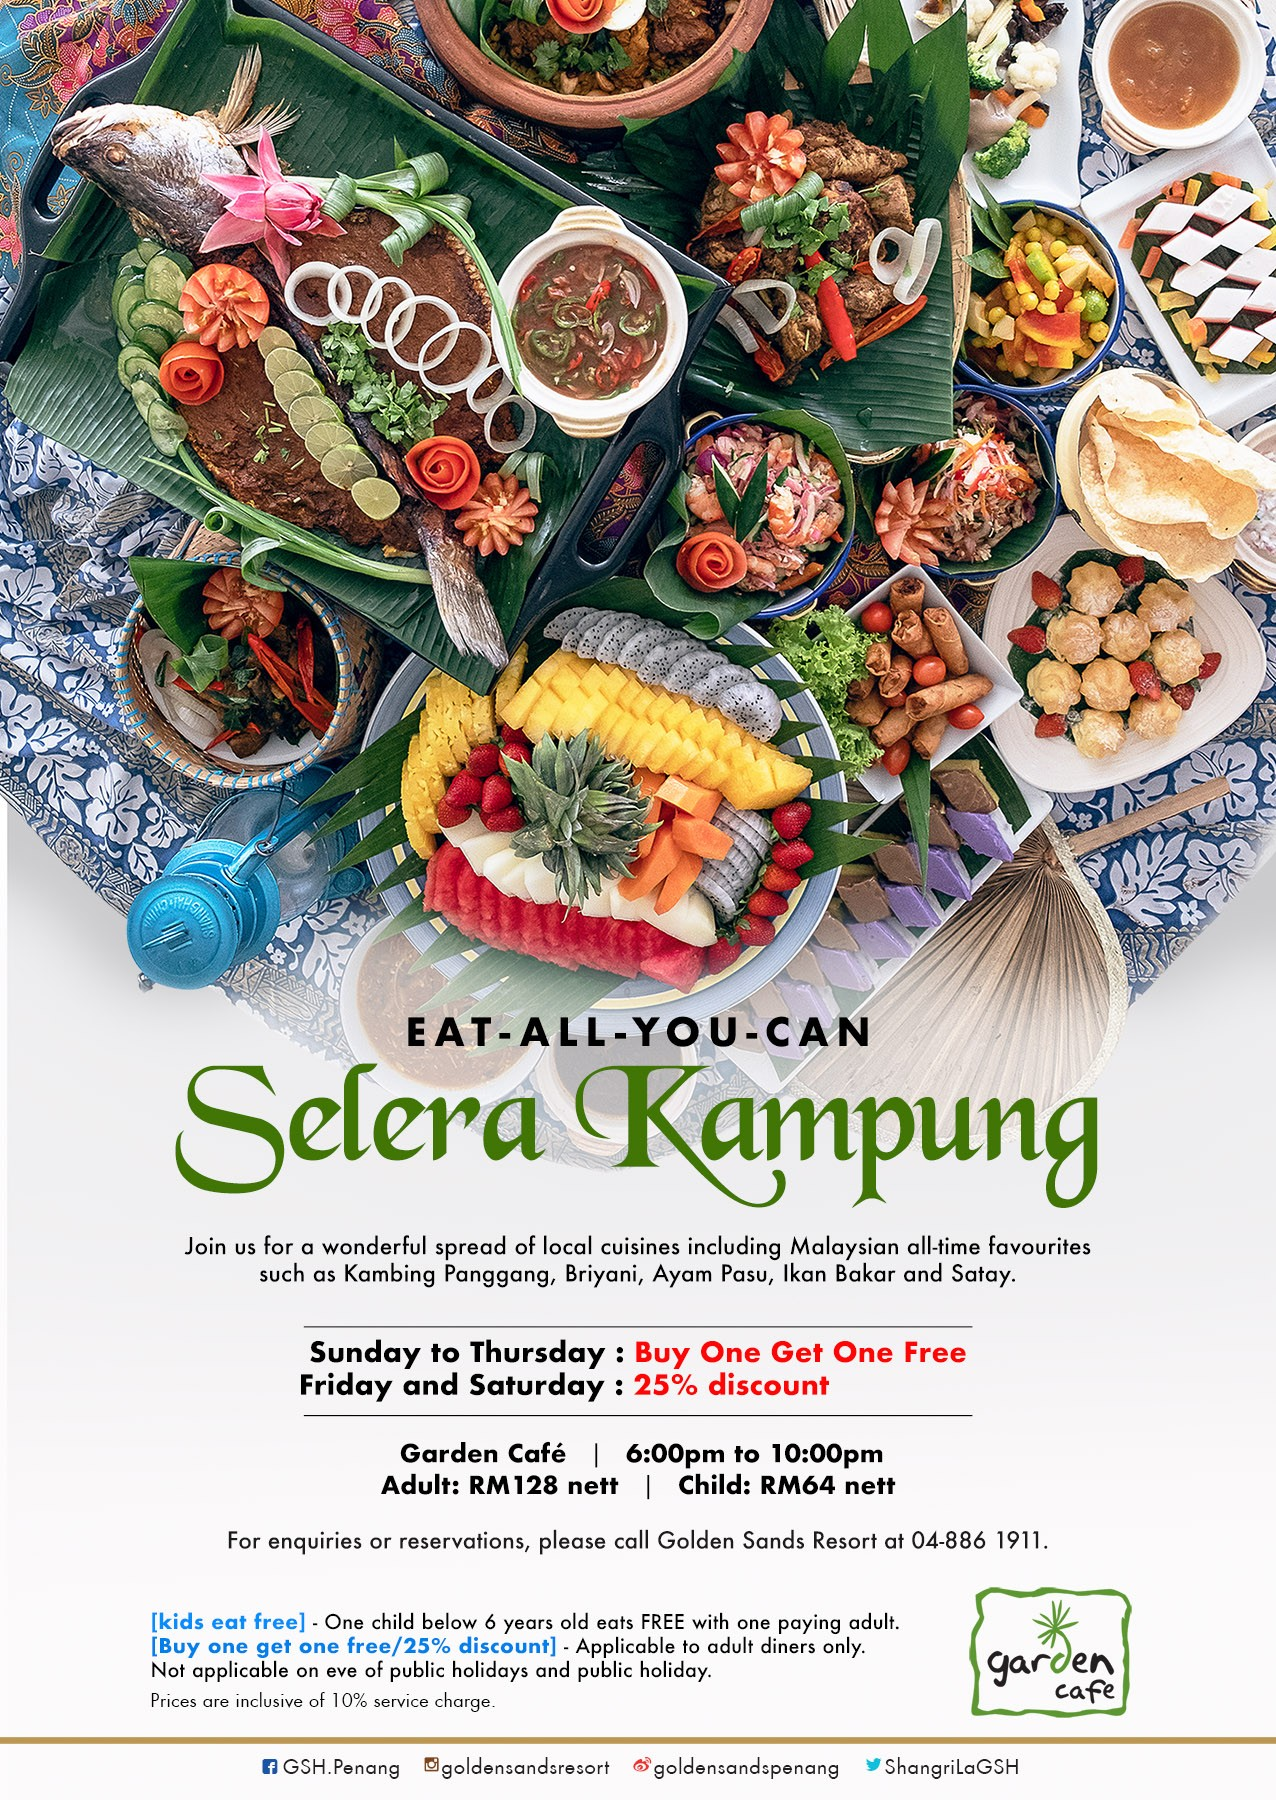 Eat All You Can Selera Kampung  Golden Sands Resort by Shangri-La